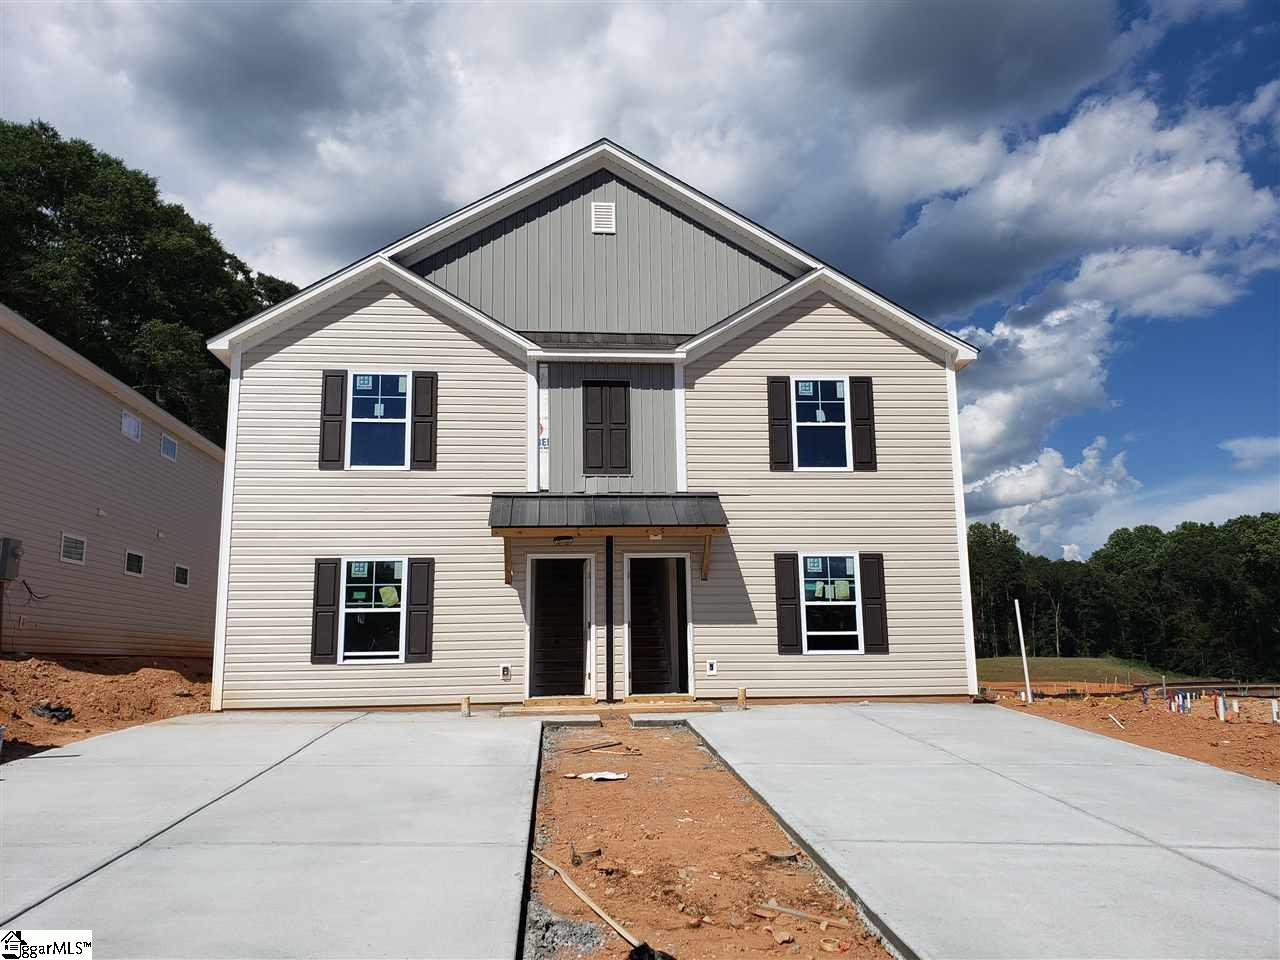 209 Royal Pendelton, SC 29670